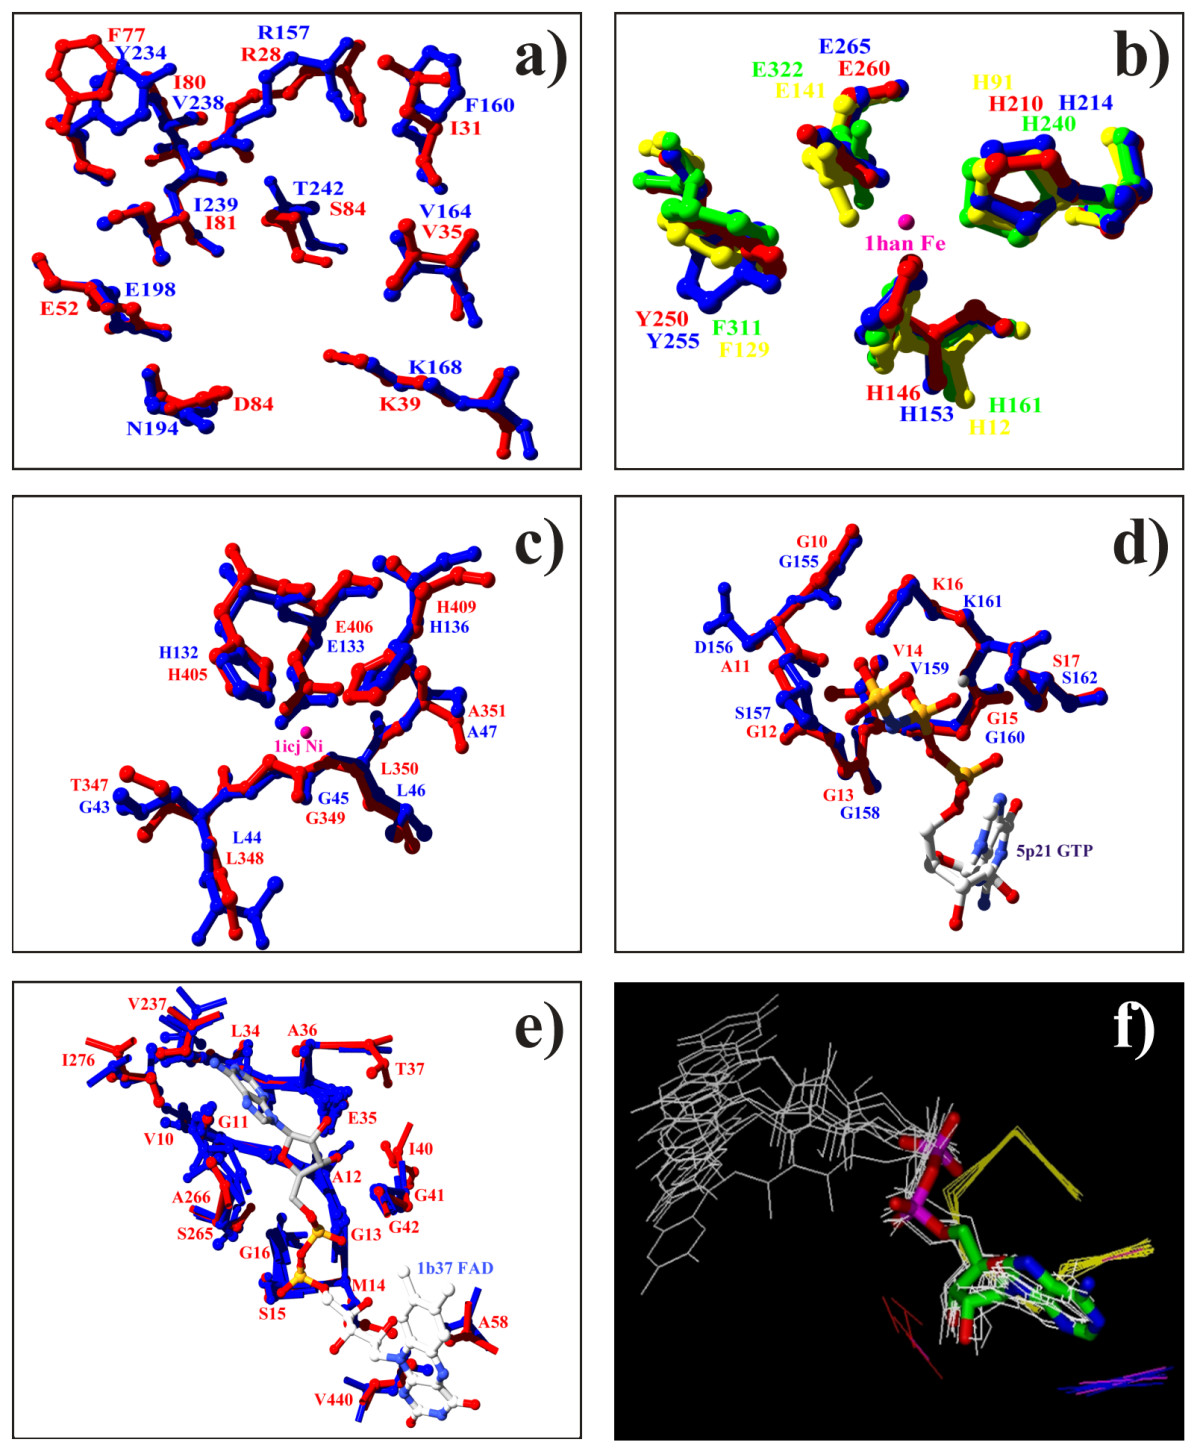 http://static-content.springer.com/image/art%3A10.1186%2F1471-2105-6-194/MediaObjects/12859_2005_Article_519_Fig3_HTML.jpg